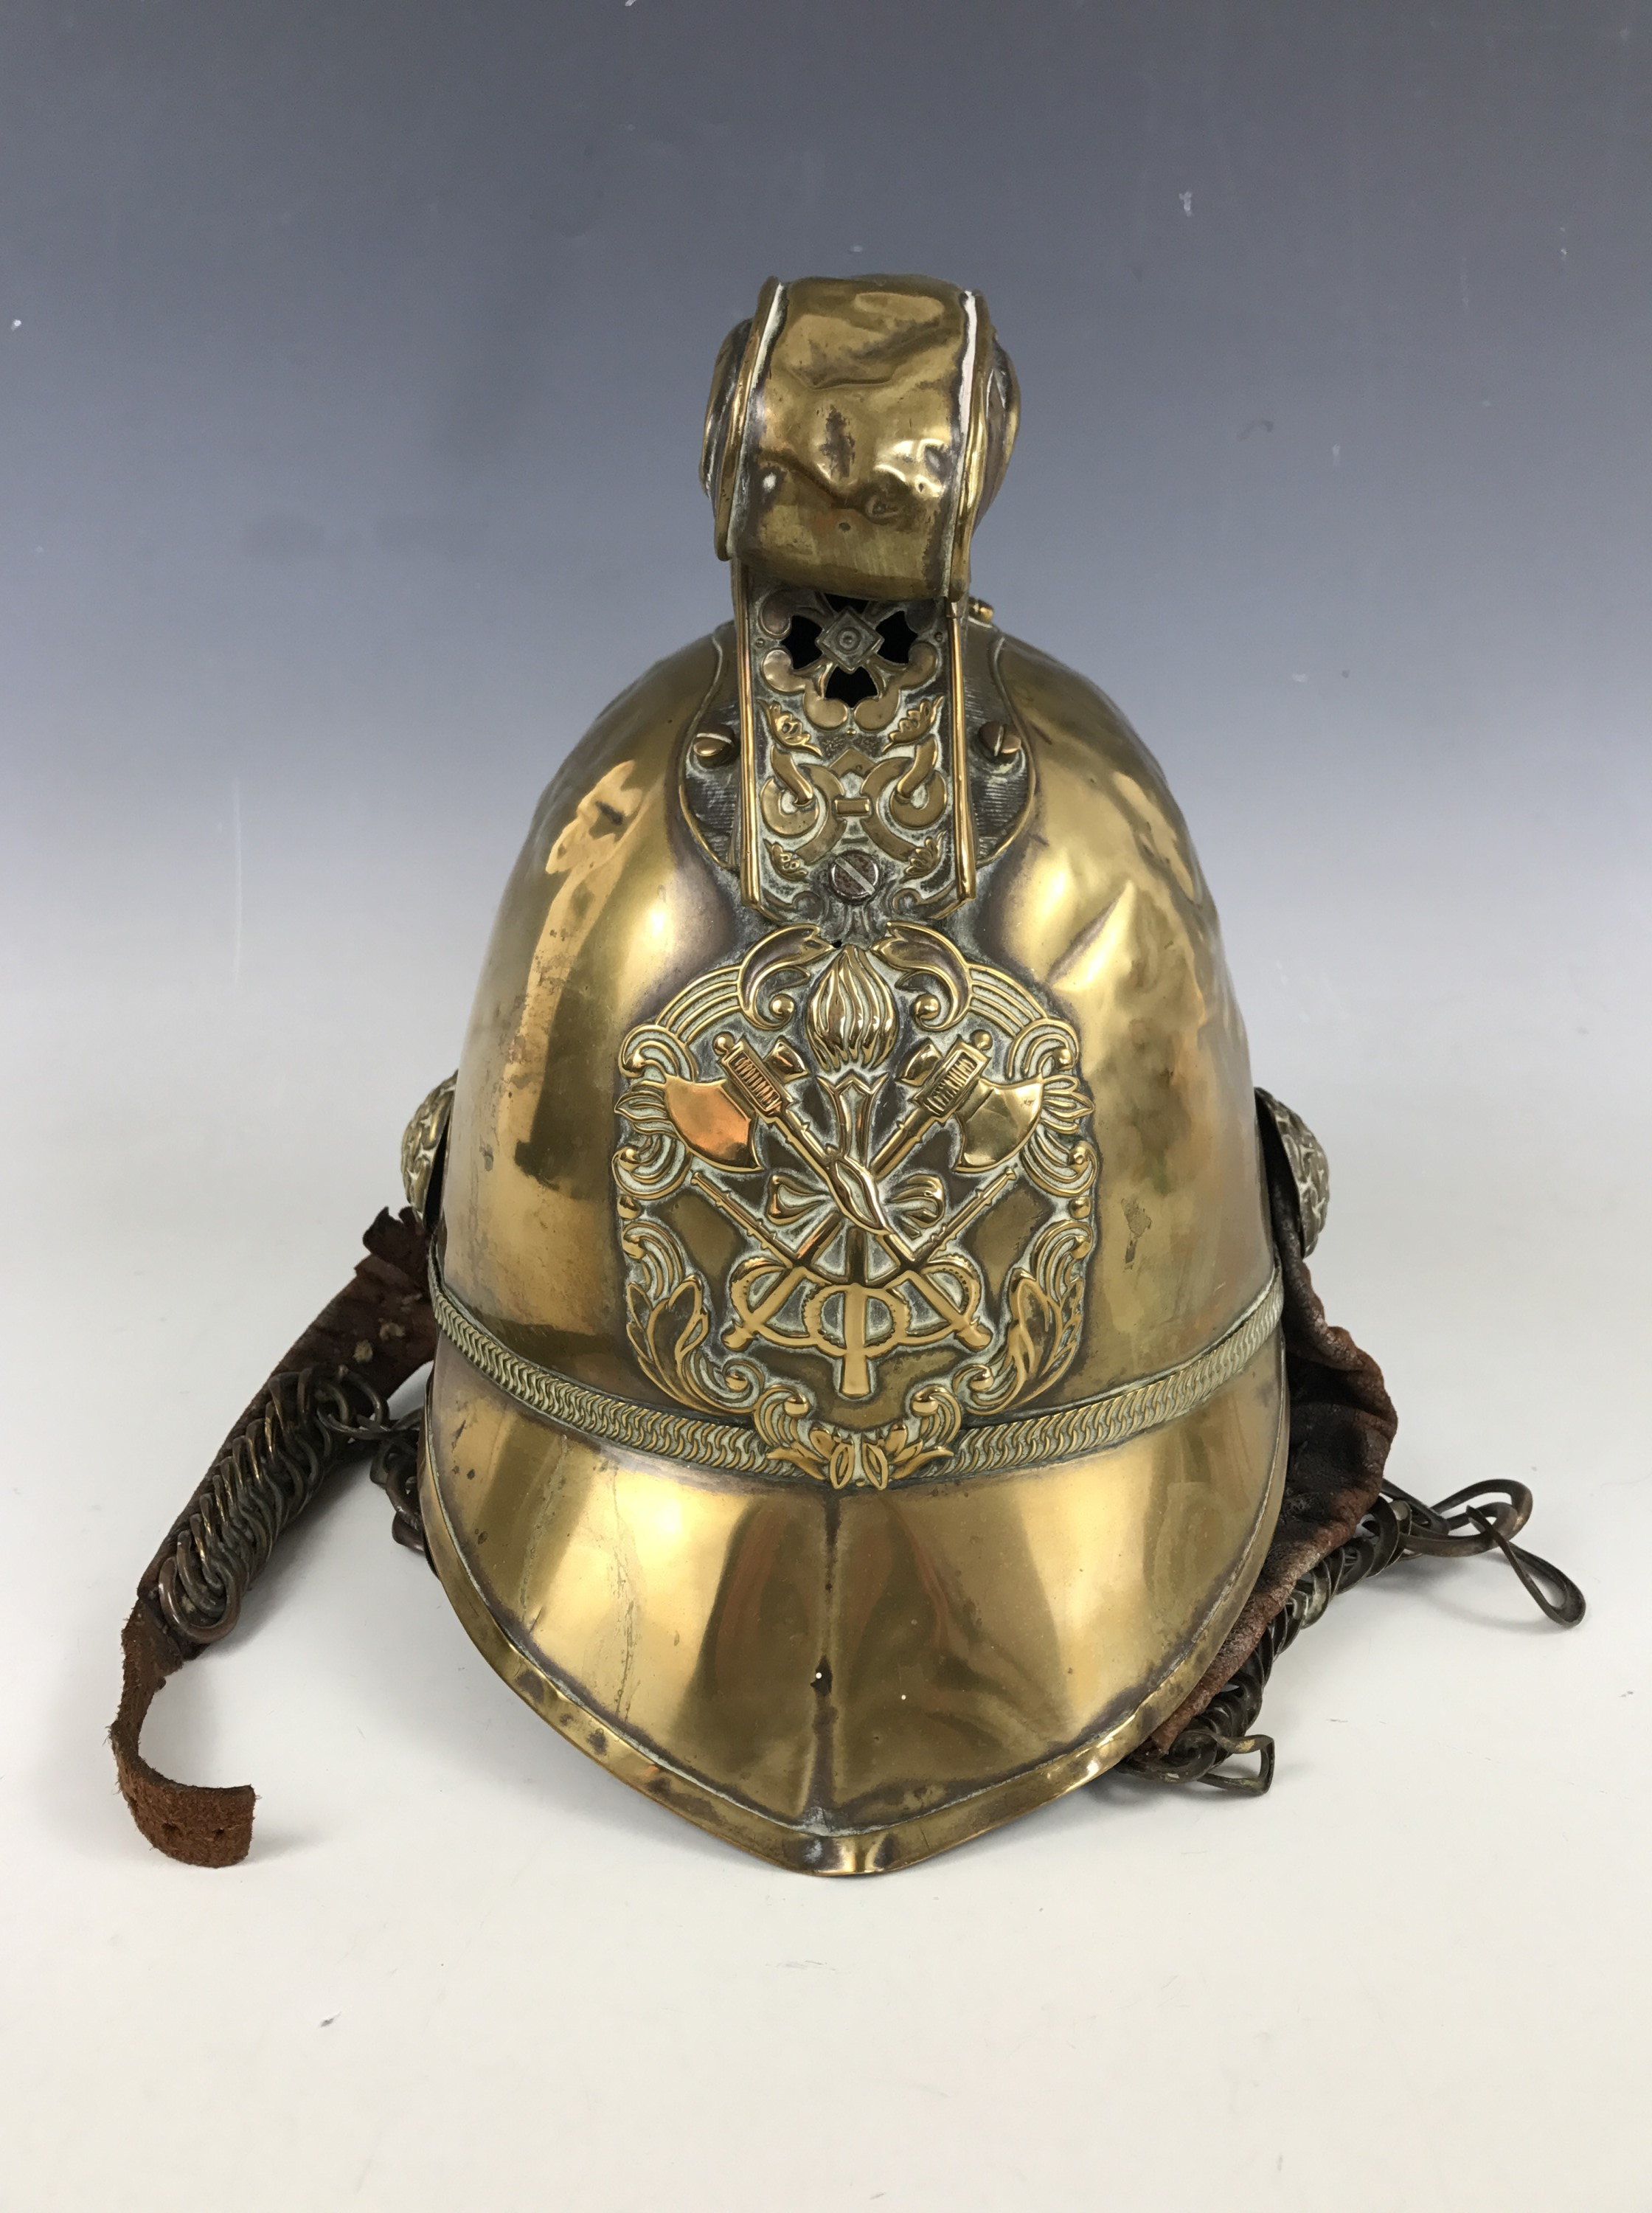 Lot 18 - A late 19th / early 20th Century Merryweather pattern fireman other ranks' brass helmet,